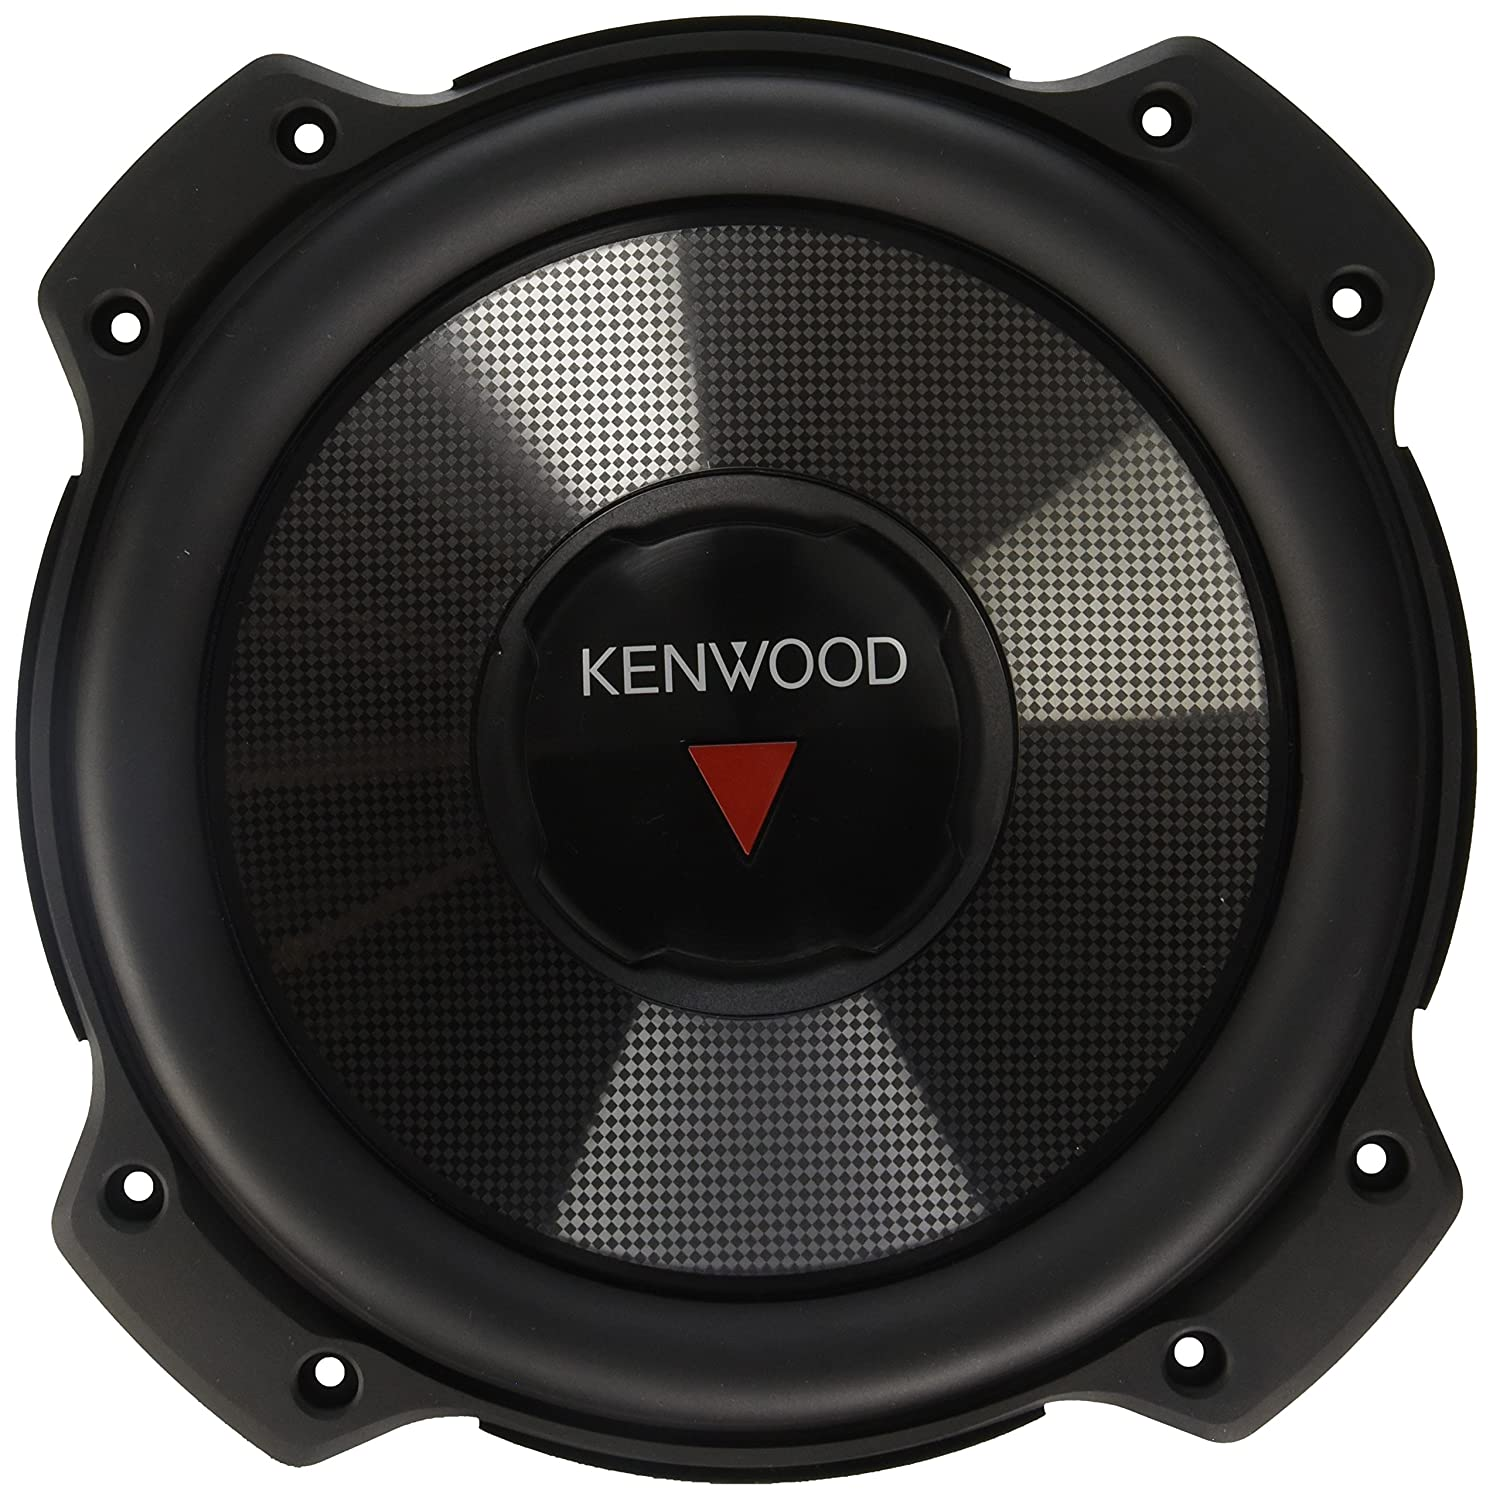 Kenwood 10 Inch 1300 Watt 4 Ohm Car Audio Power Stereo Boss Kit2 8 Gauge Complete Amplifier Wiring Kit Pair Vminnovations Subwoofer Kfc W2516ps Cell Phones Accessories